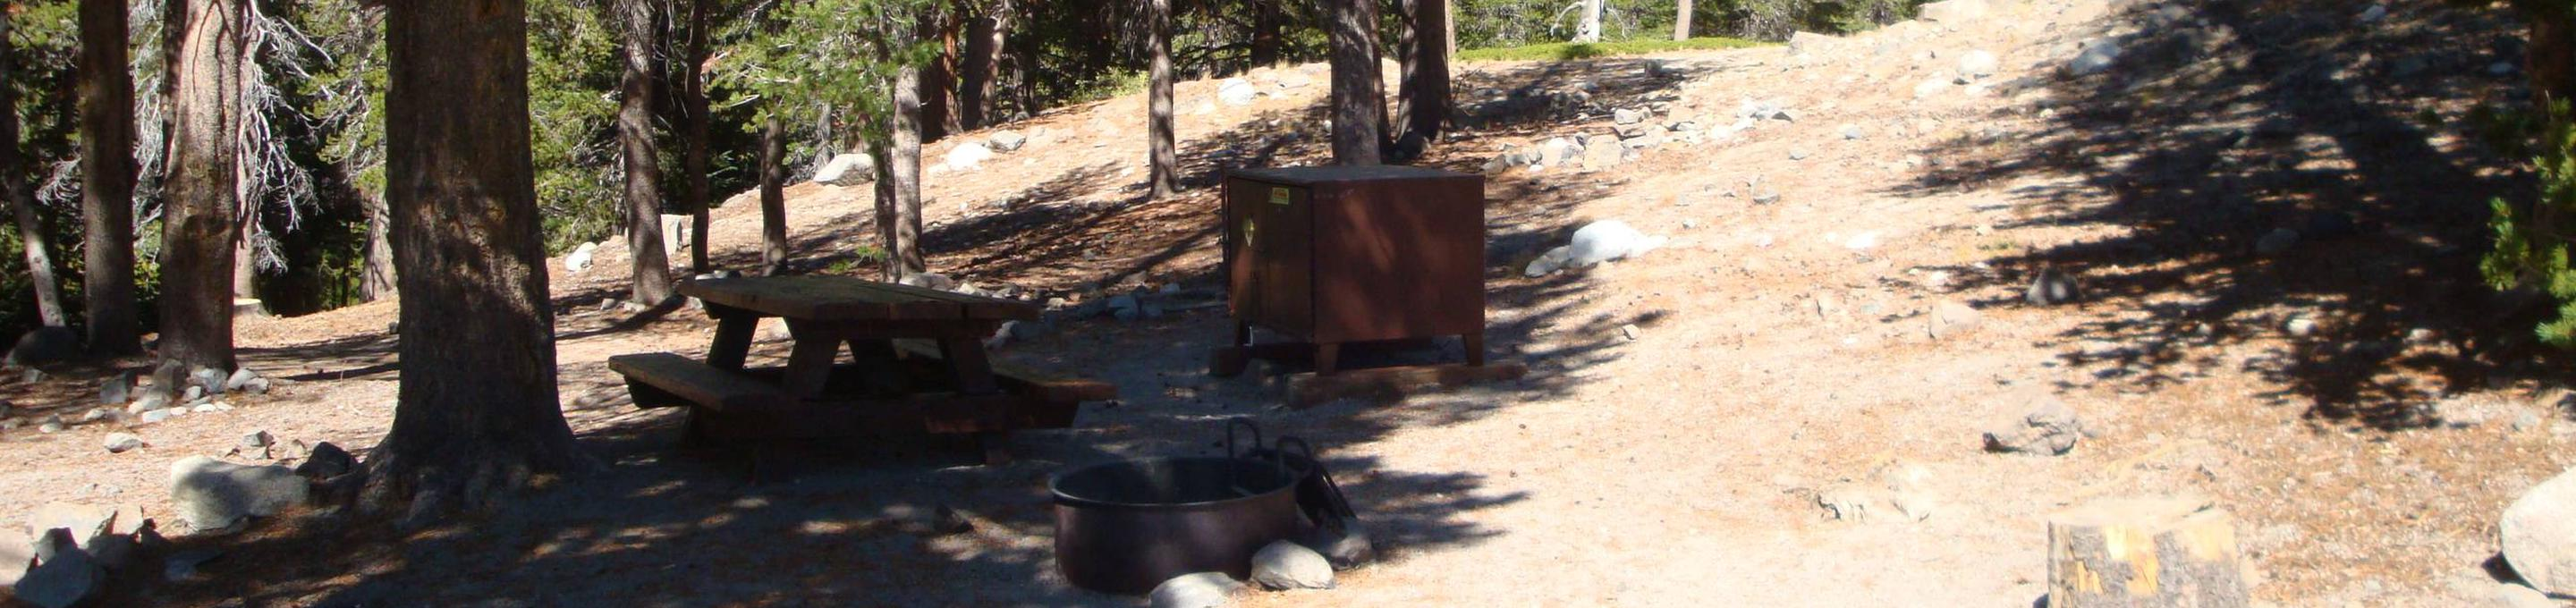 Lake Mary Campground SITE 49